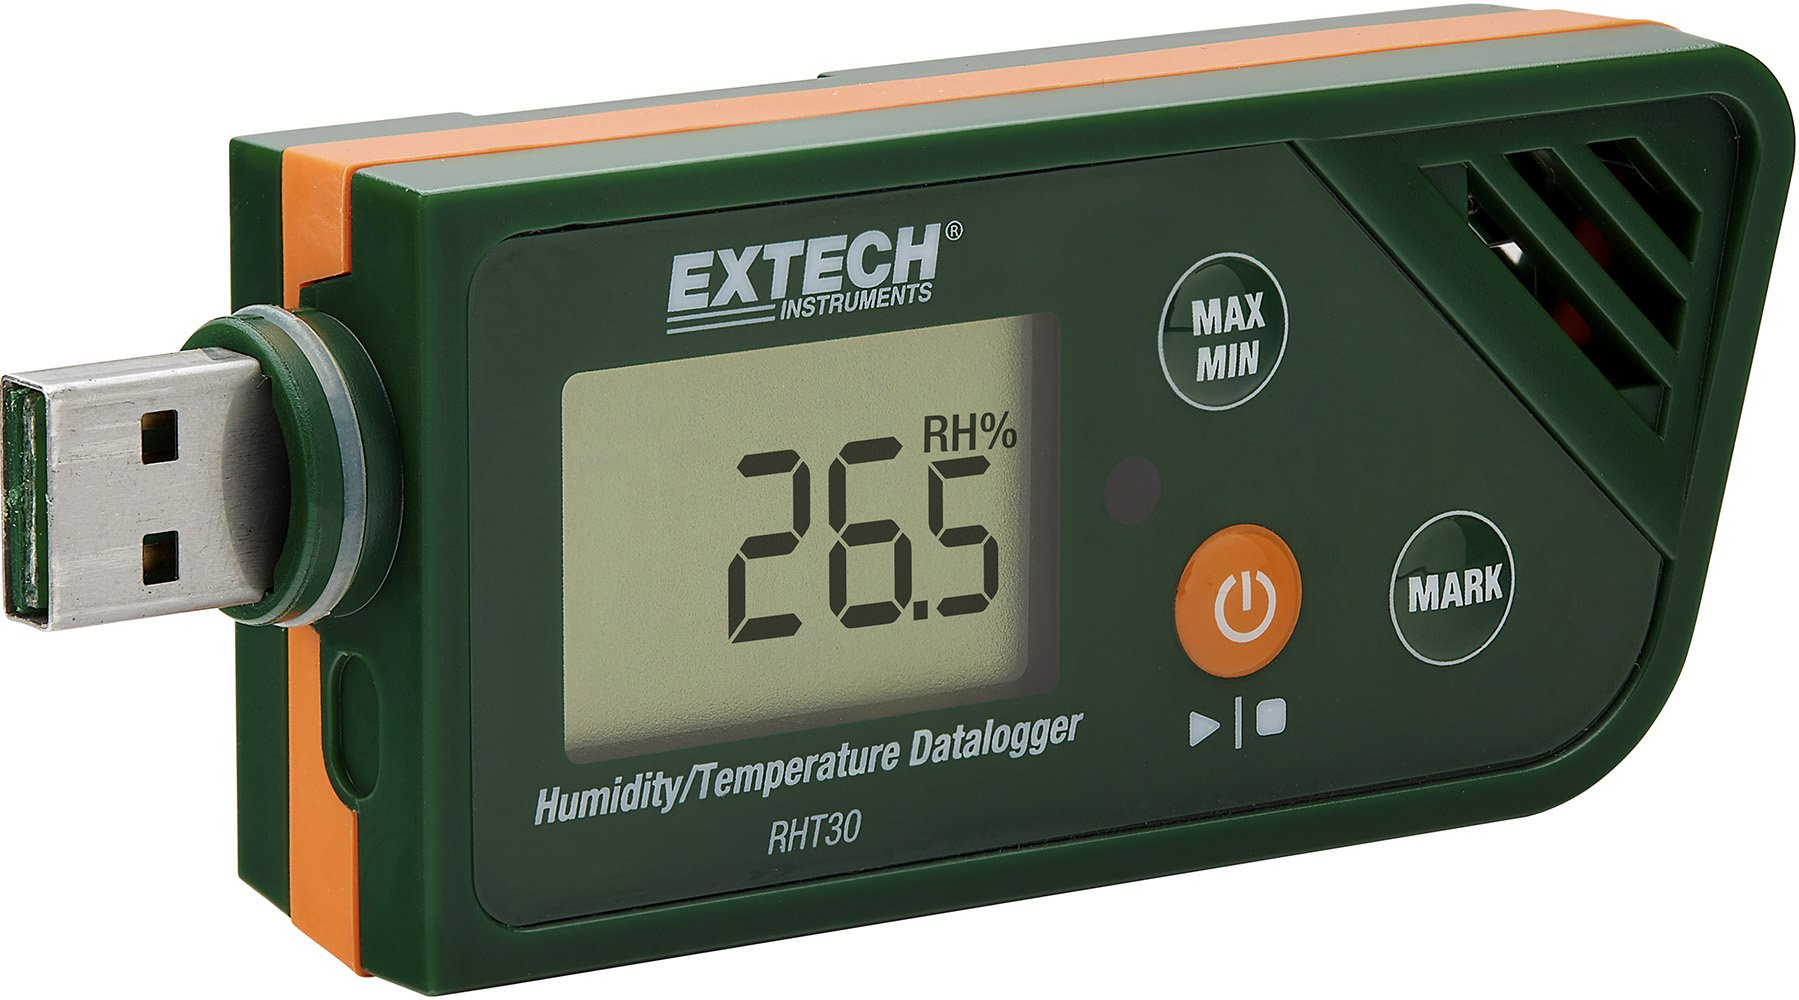 Extech RHT30 USB Humidity/ Temperature Datalogger